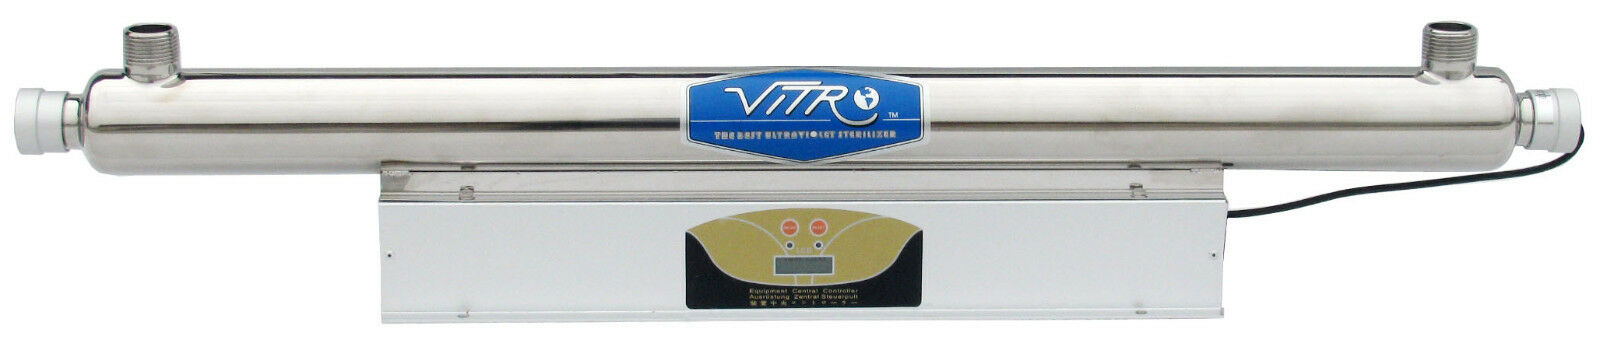 Uv sterilizer  Pure water Clarifier purifier for home lab&med use 20,000L hour a